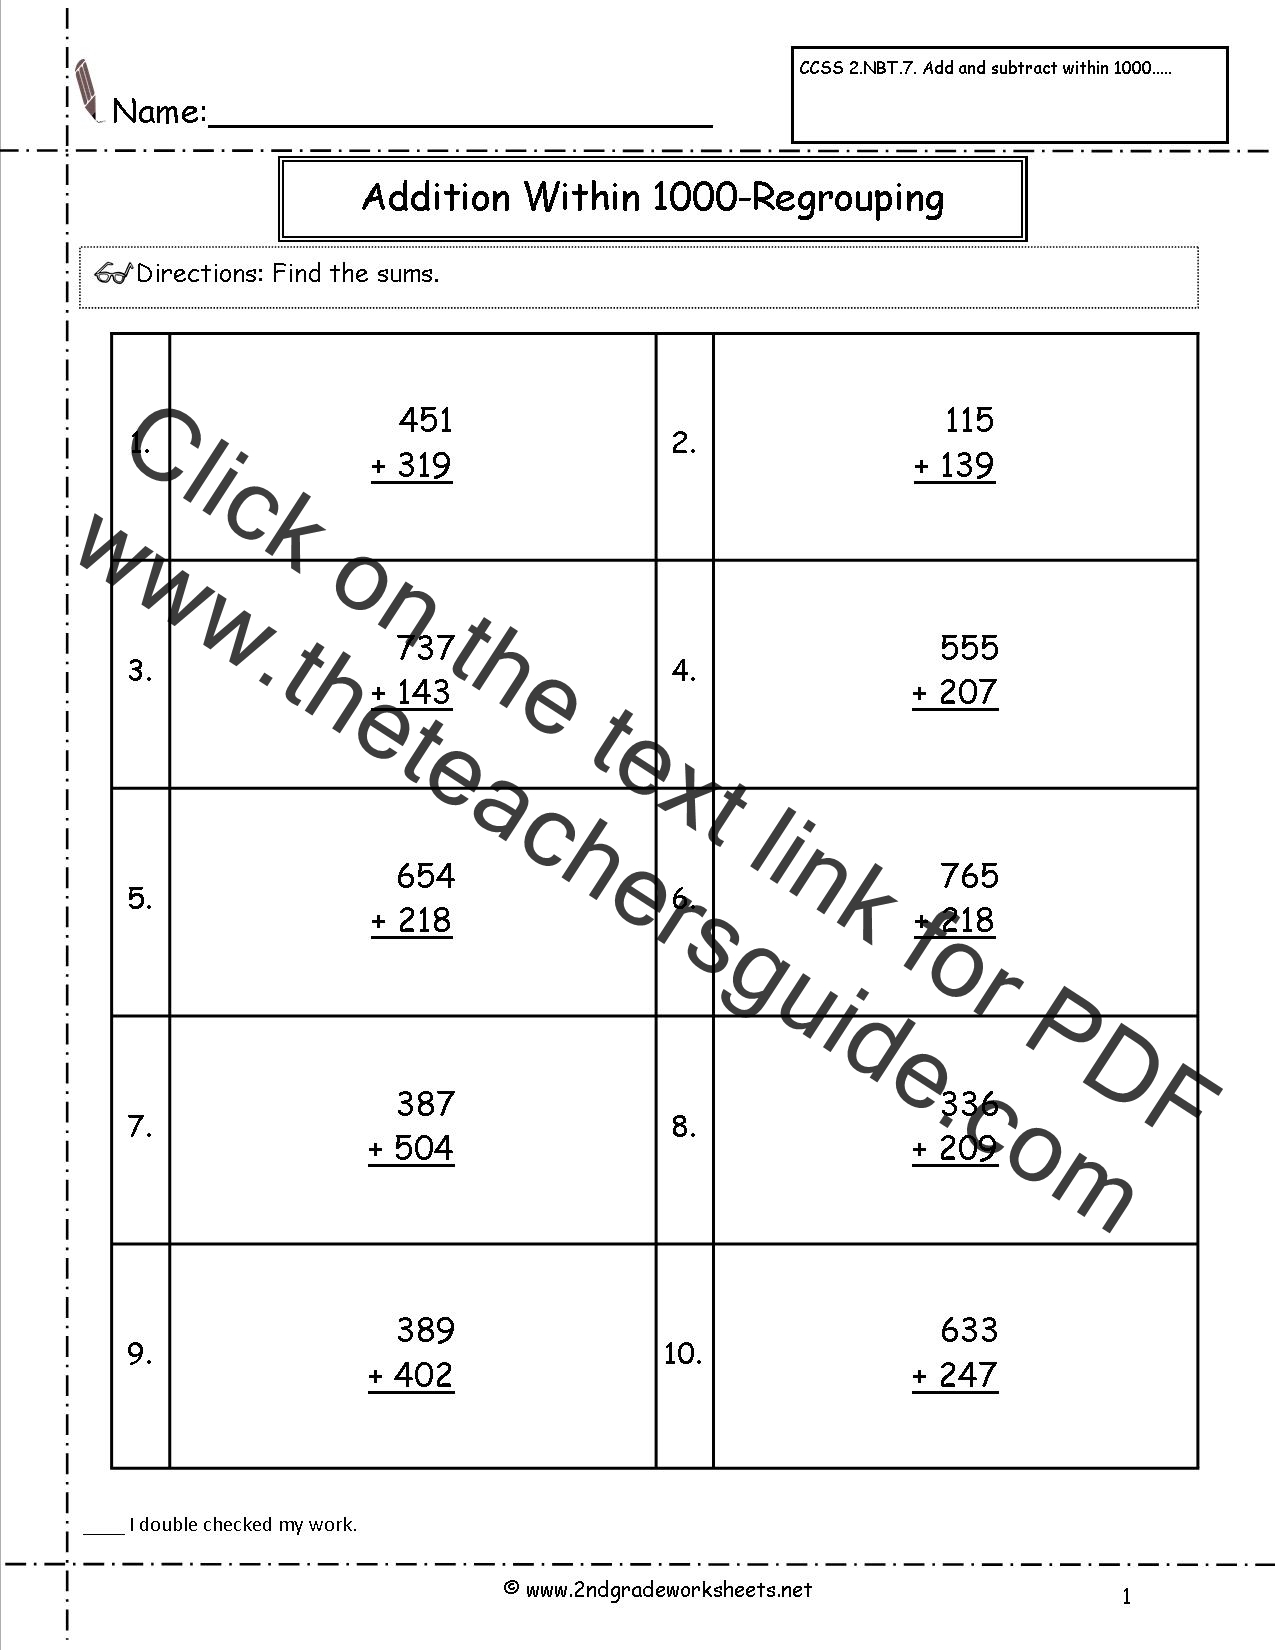 CCSS 2.NBT.7 Worksheets, Addition and Subtraction Within 1000 ...